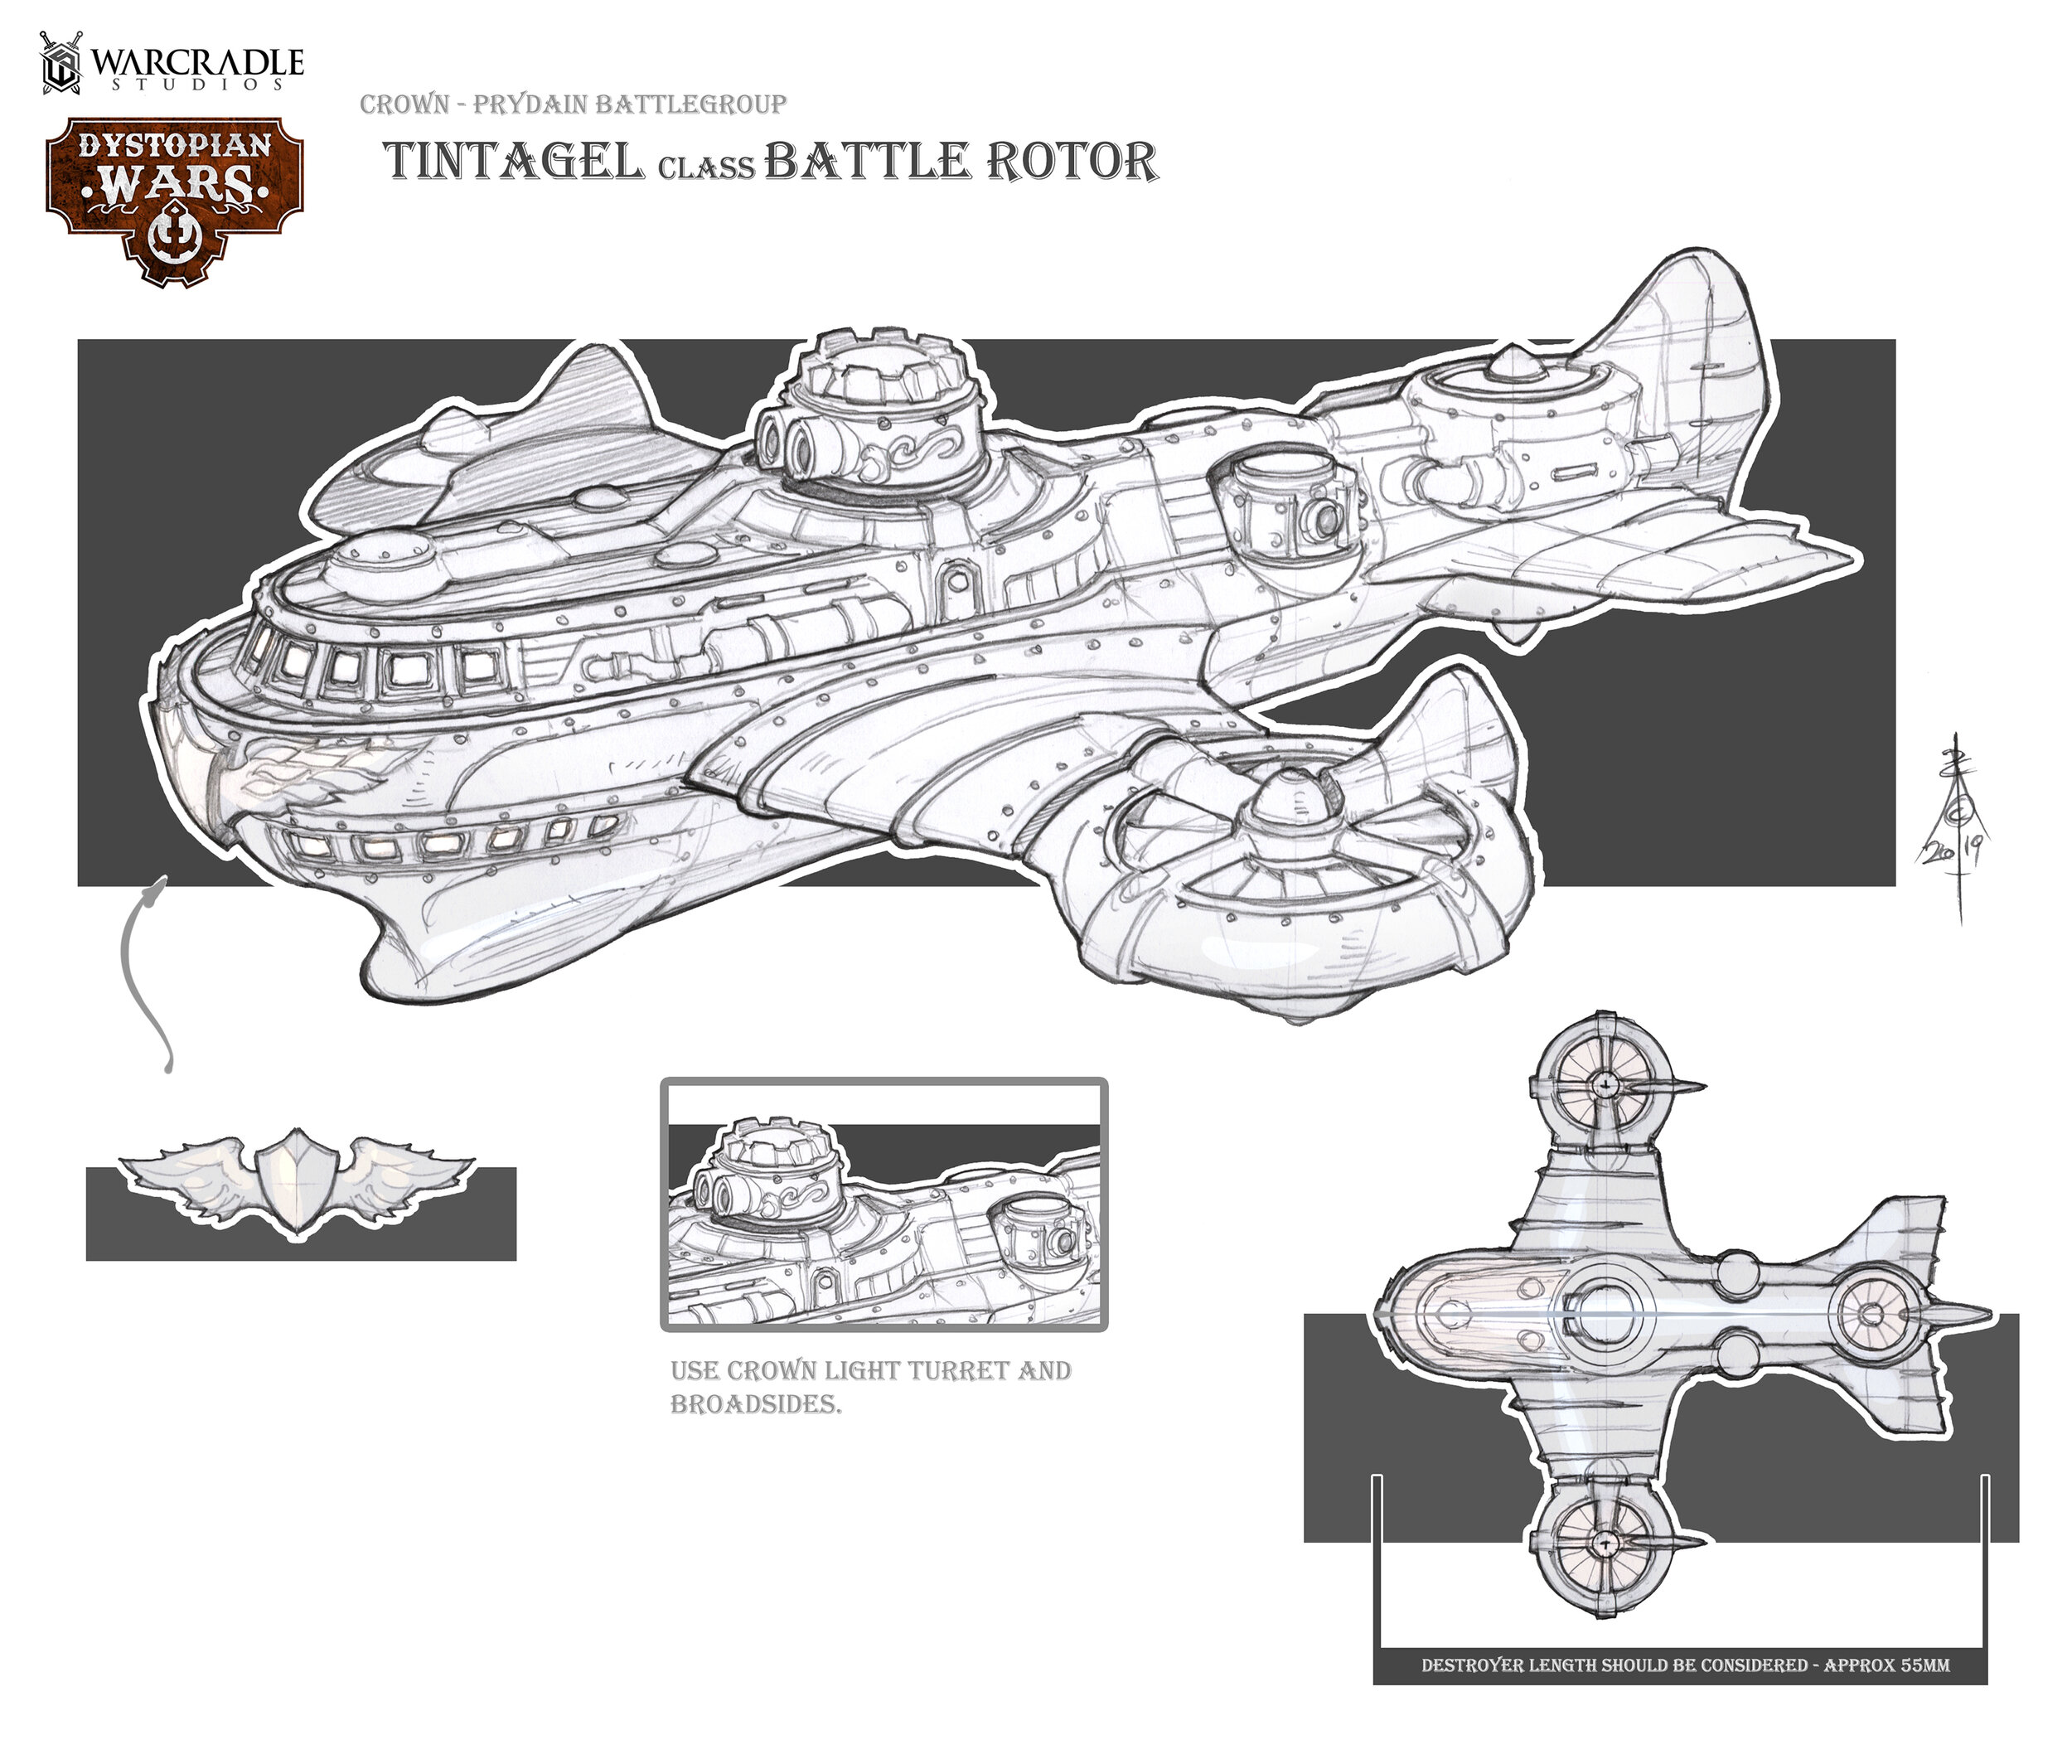 Proof_DA_DW_Tintagel_Battle_Rotor_f.jpg